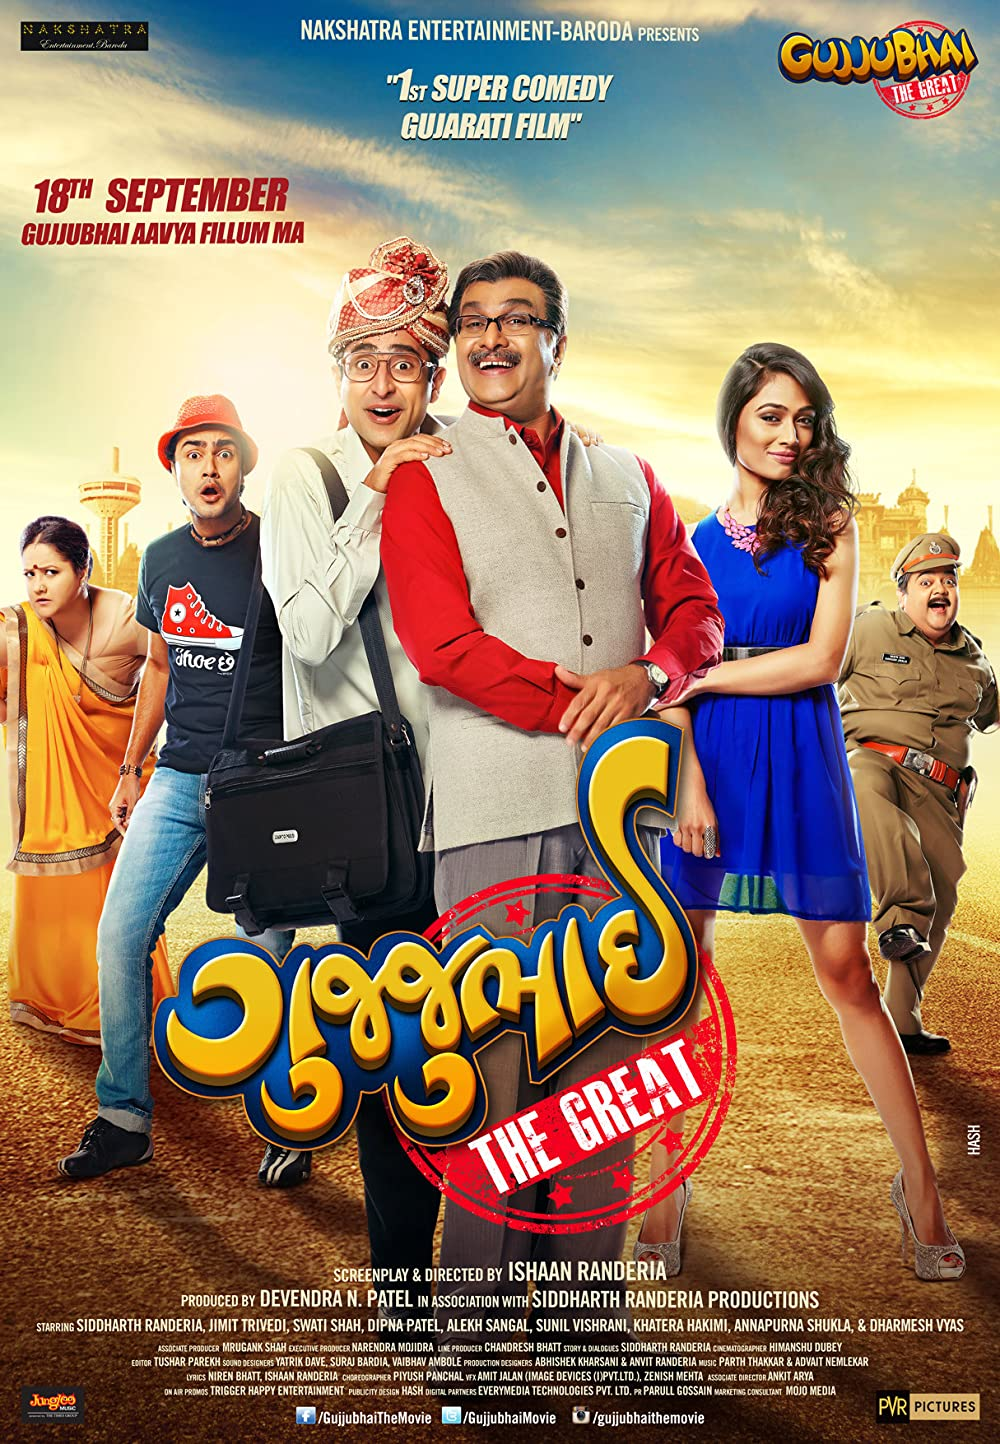 Gujjubhai the Great 2015 Gujarati 1080p HDRip ESubs 2GB Download